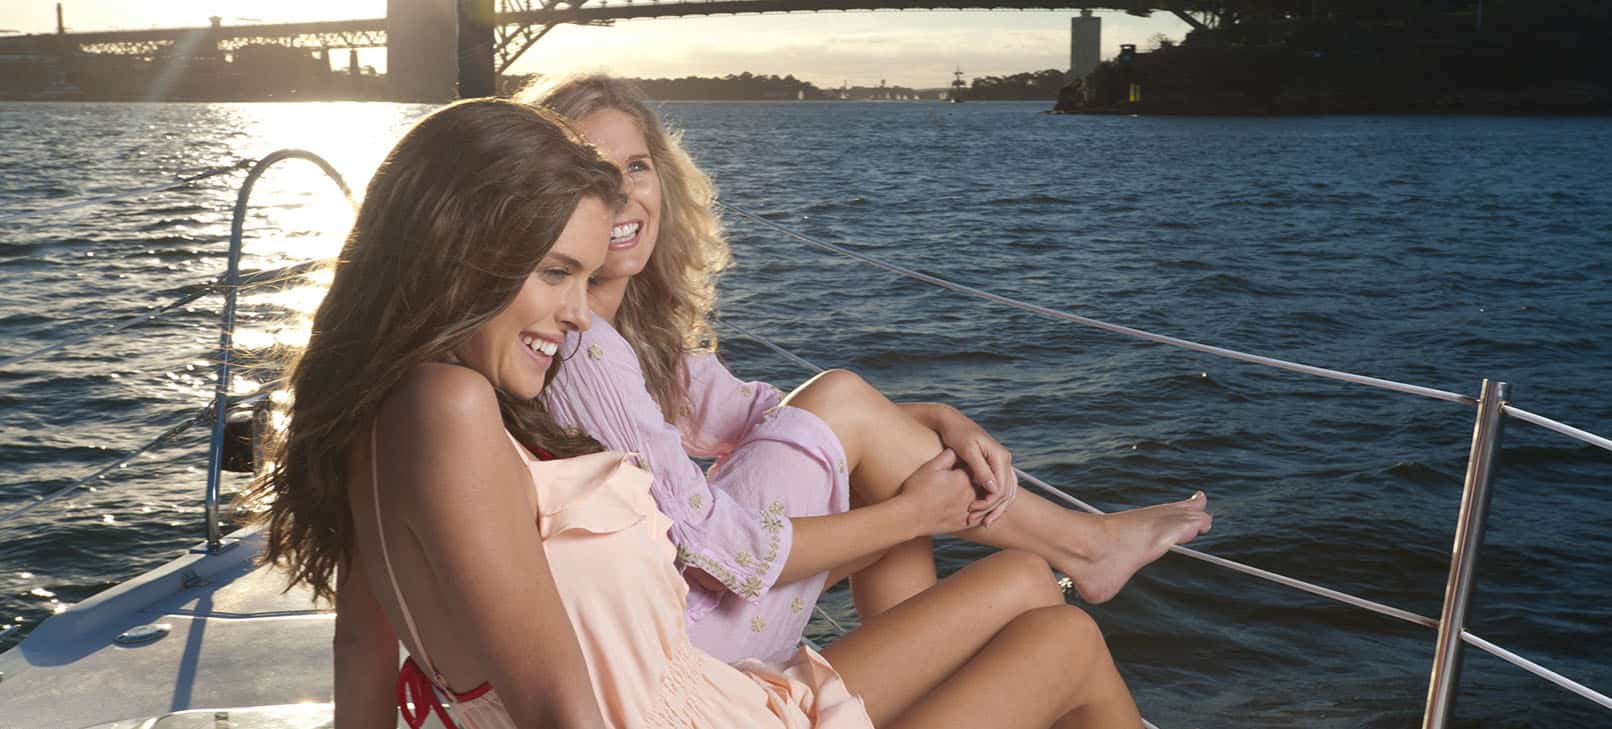 young women enjoying a hens cruise in Sydney